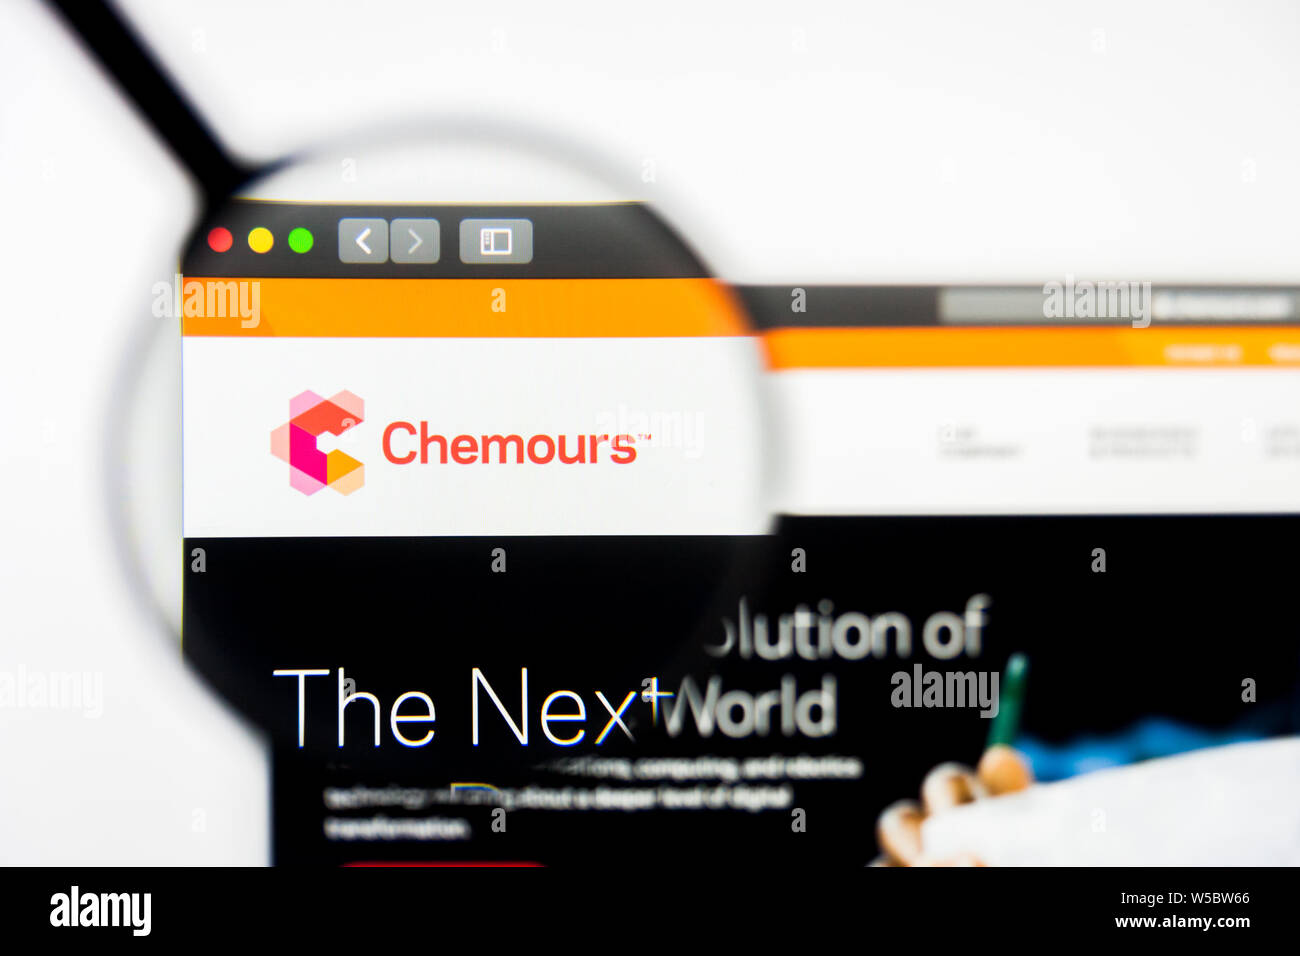 Chemours Stock Photos & Chemours Stock Images - Alamy